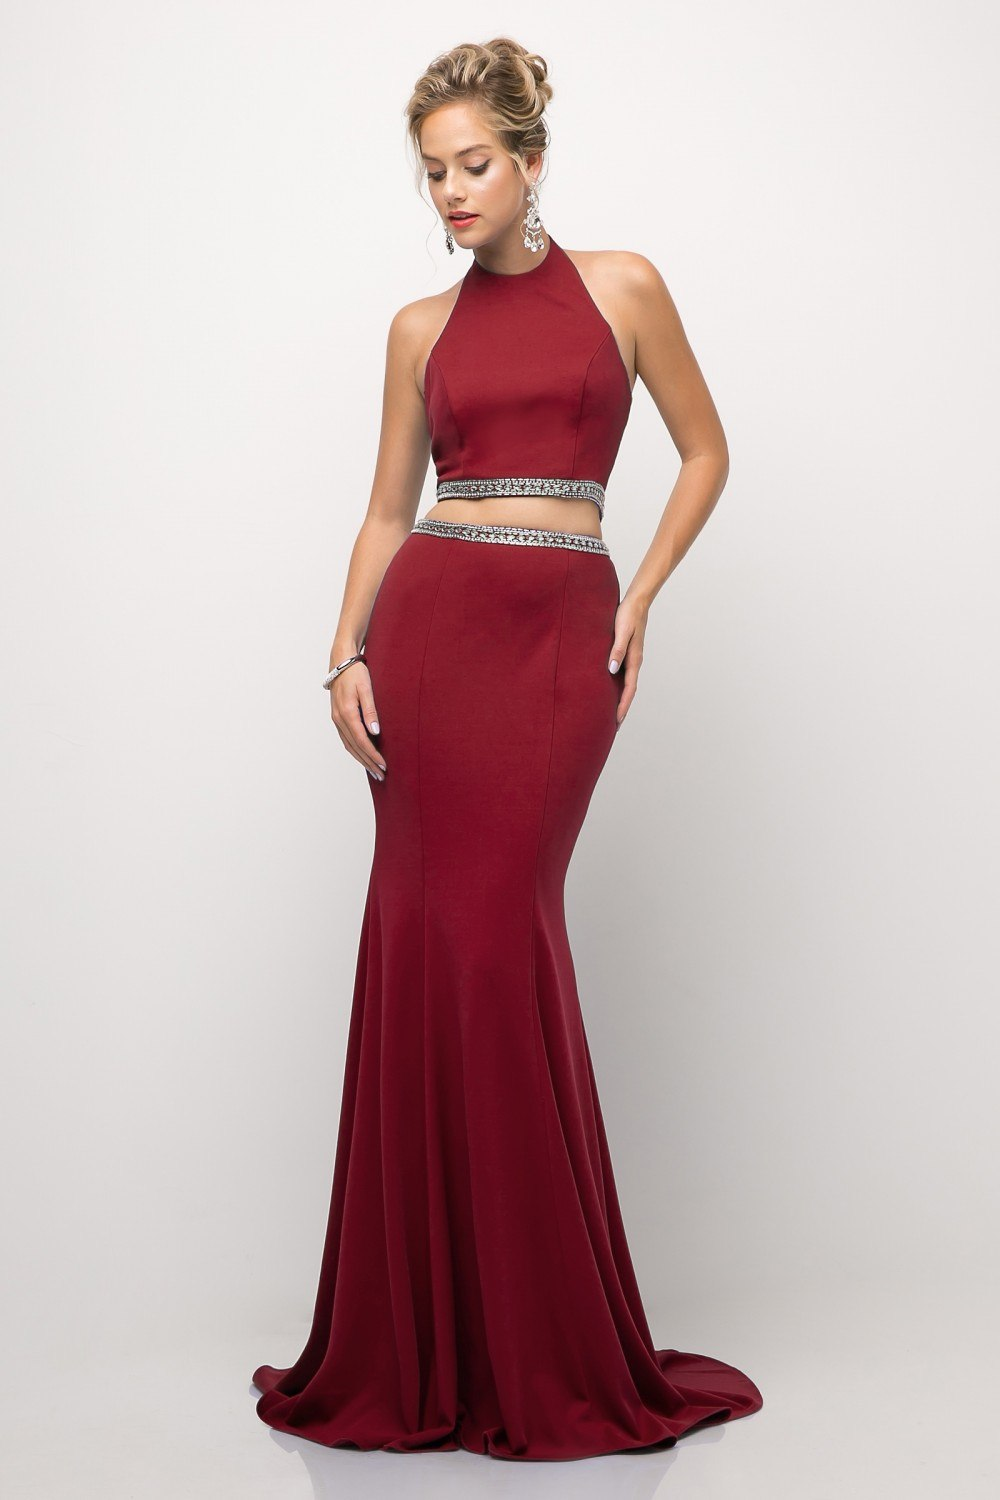 450fe7db66 ... Cinderella Divine UH551 Fit and Flare Burgundy 2 Piece Prom Gown Floor  Length